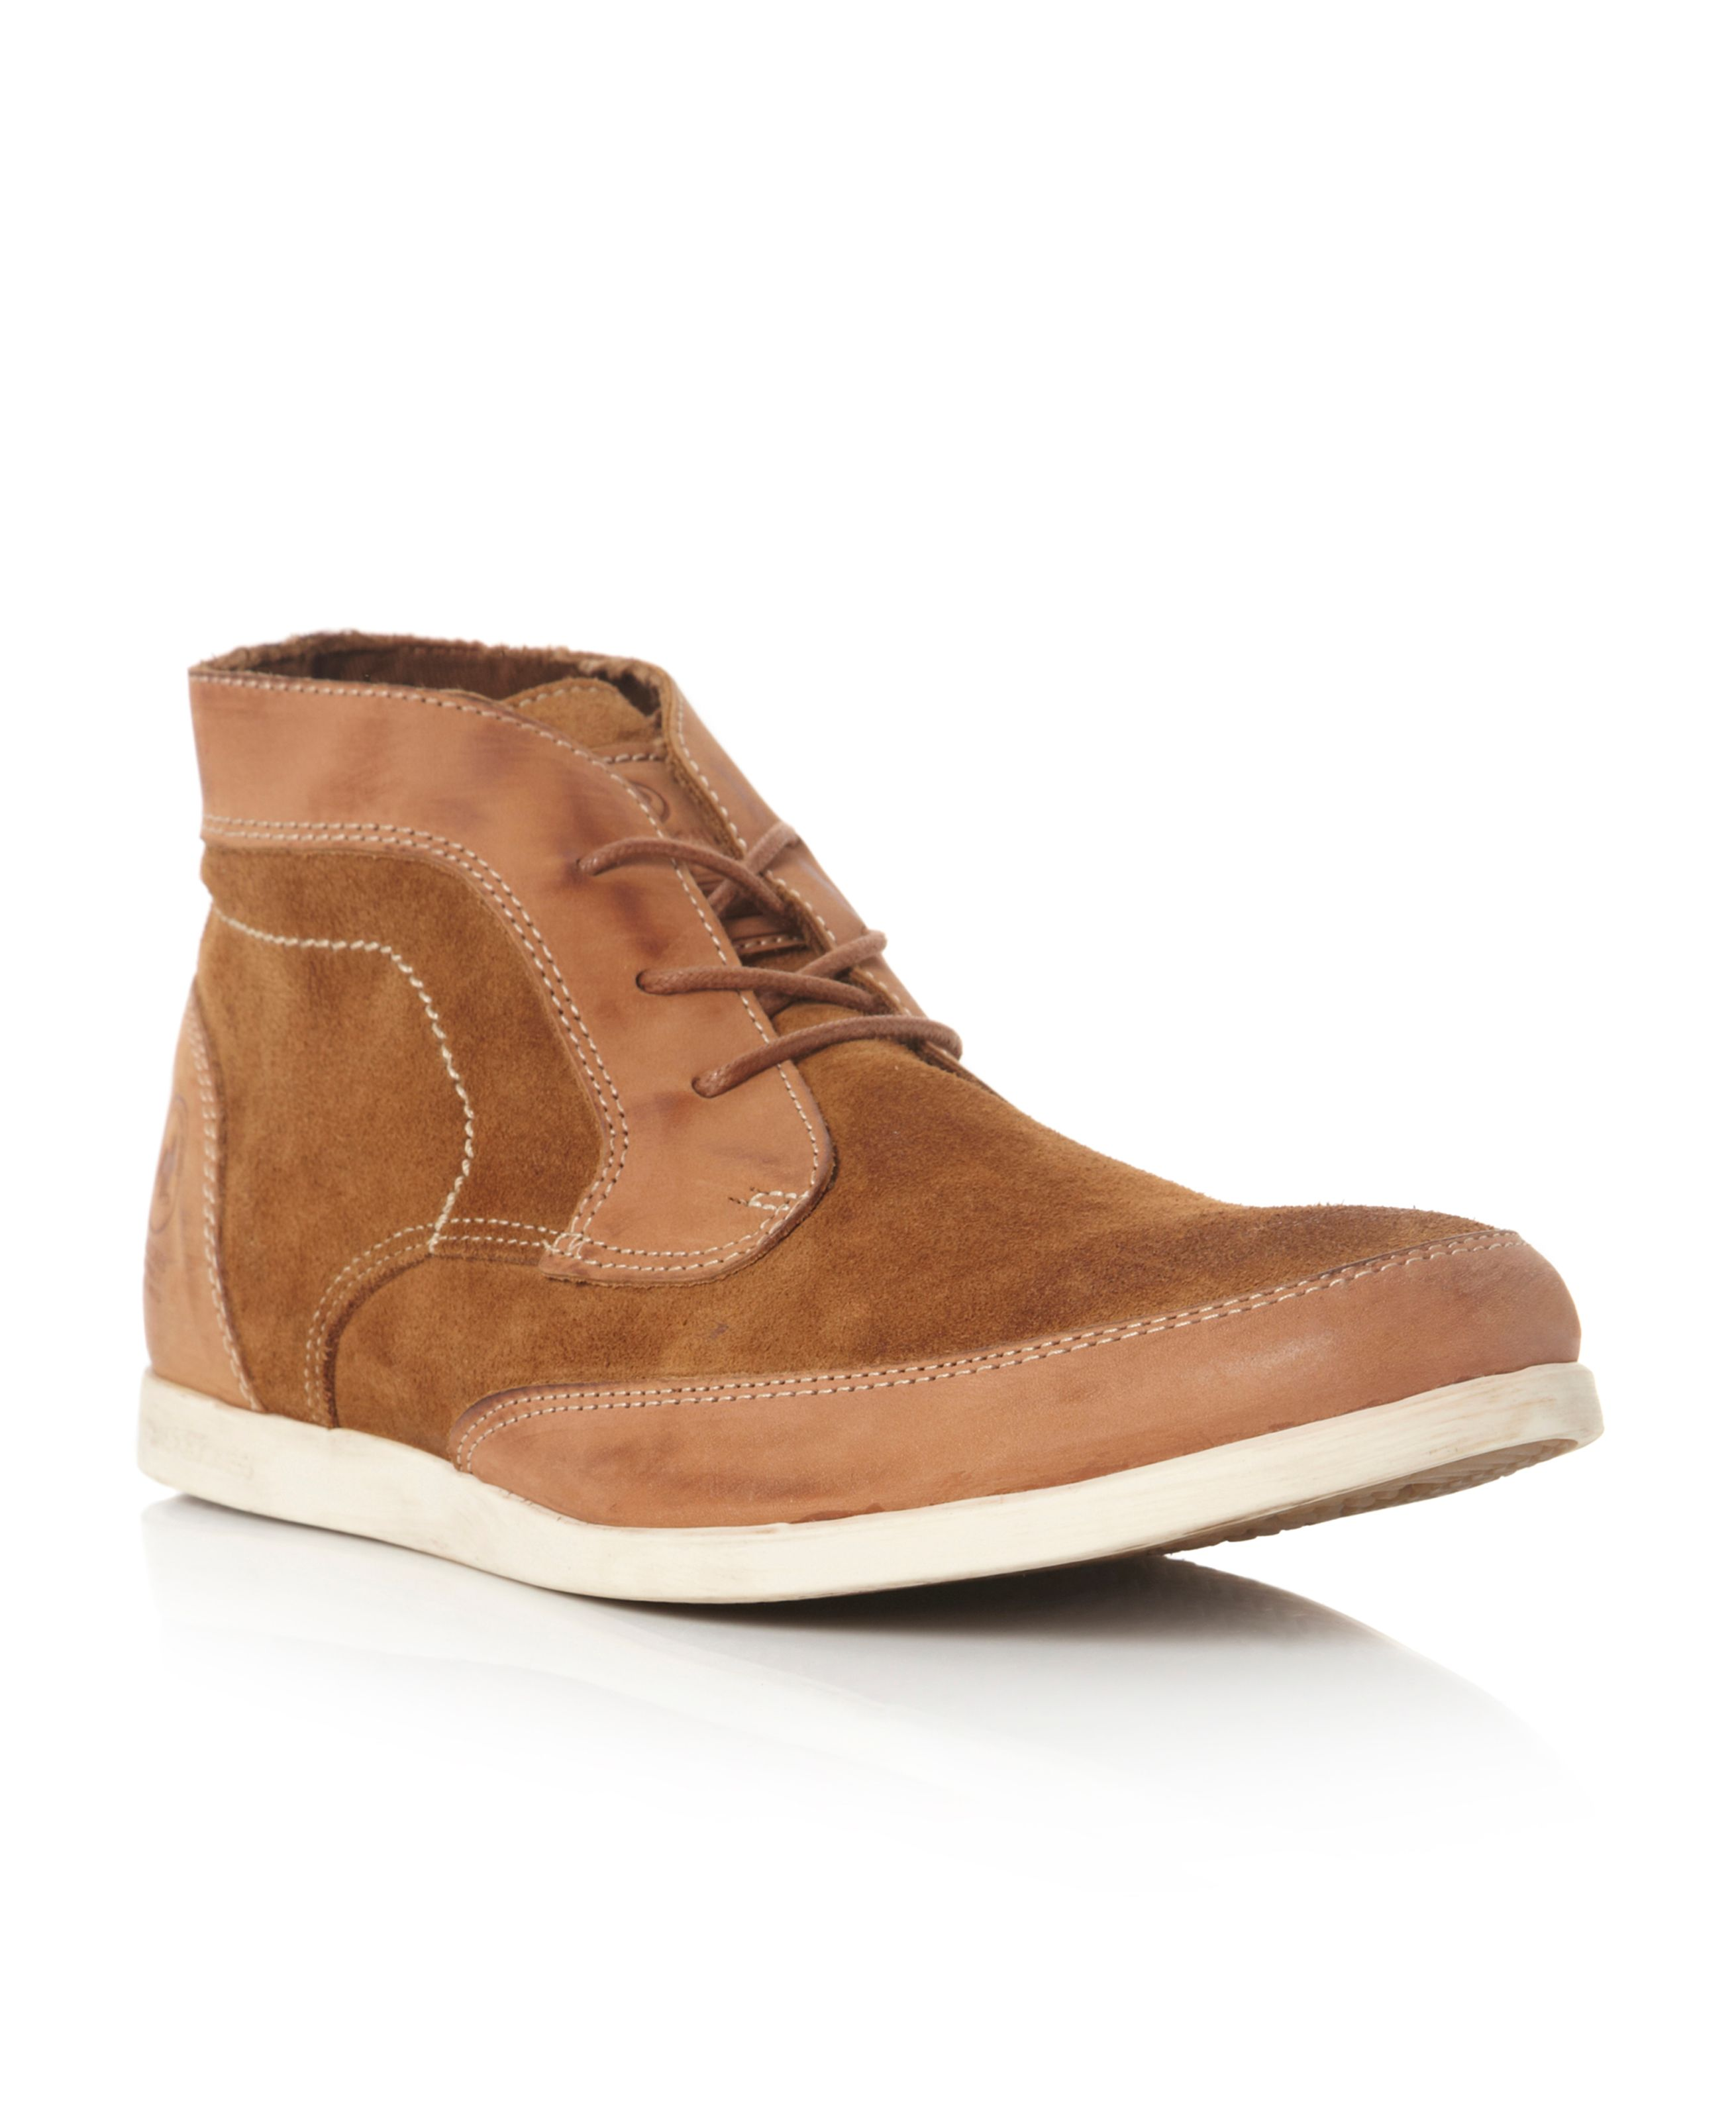 Stuttgart suede & leather boots